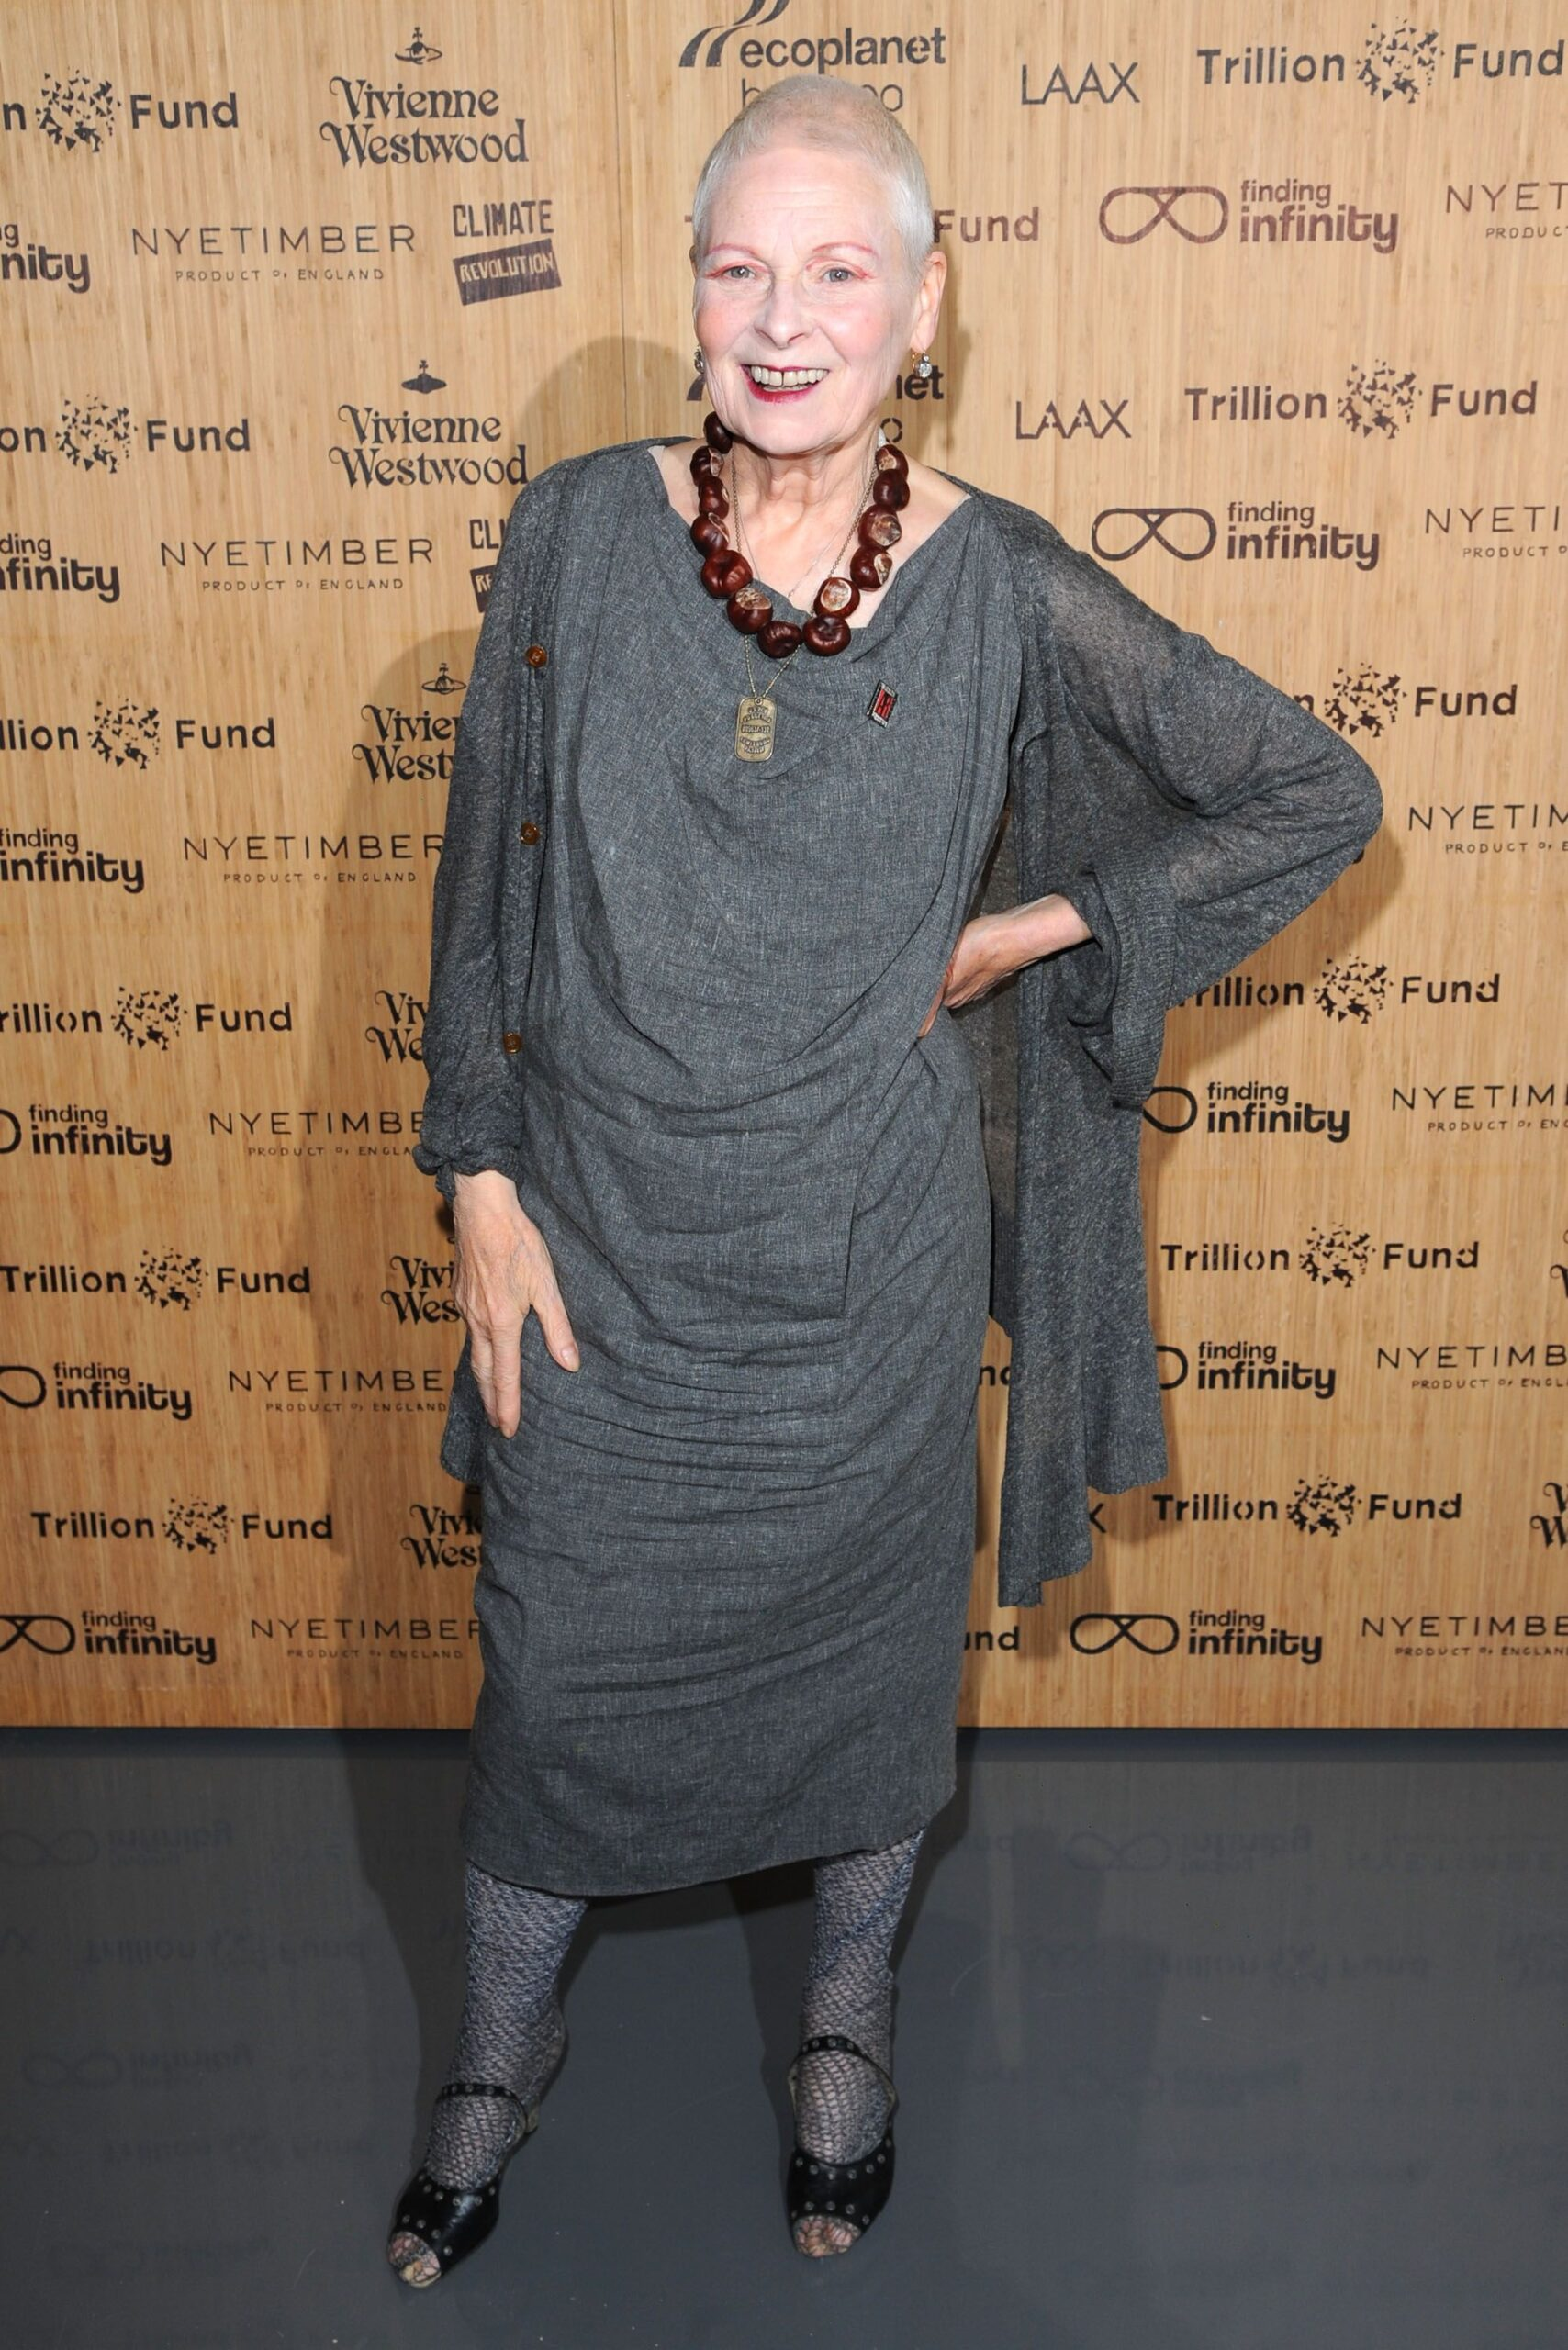 vivienne westwood full body photo